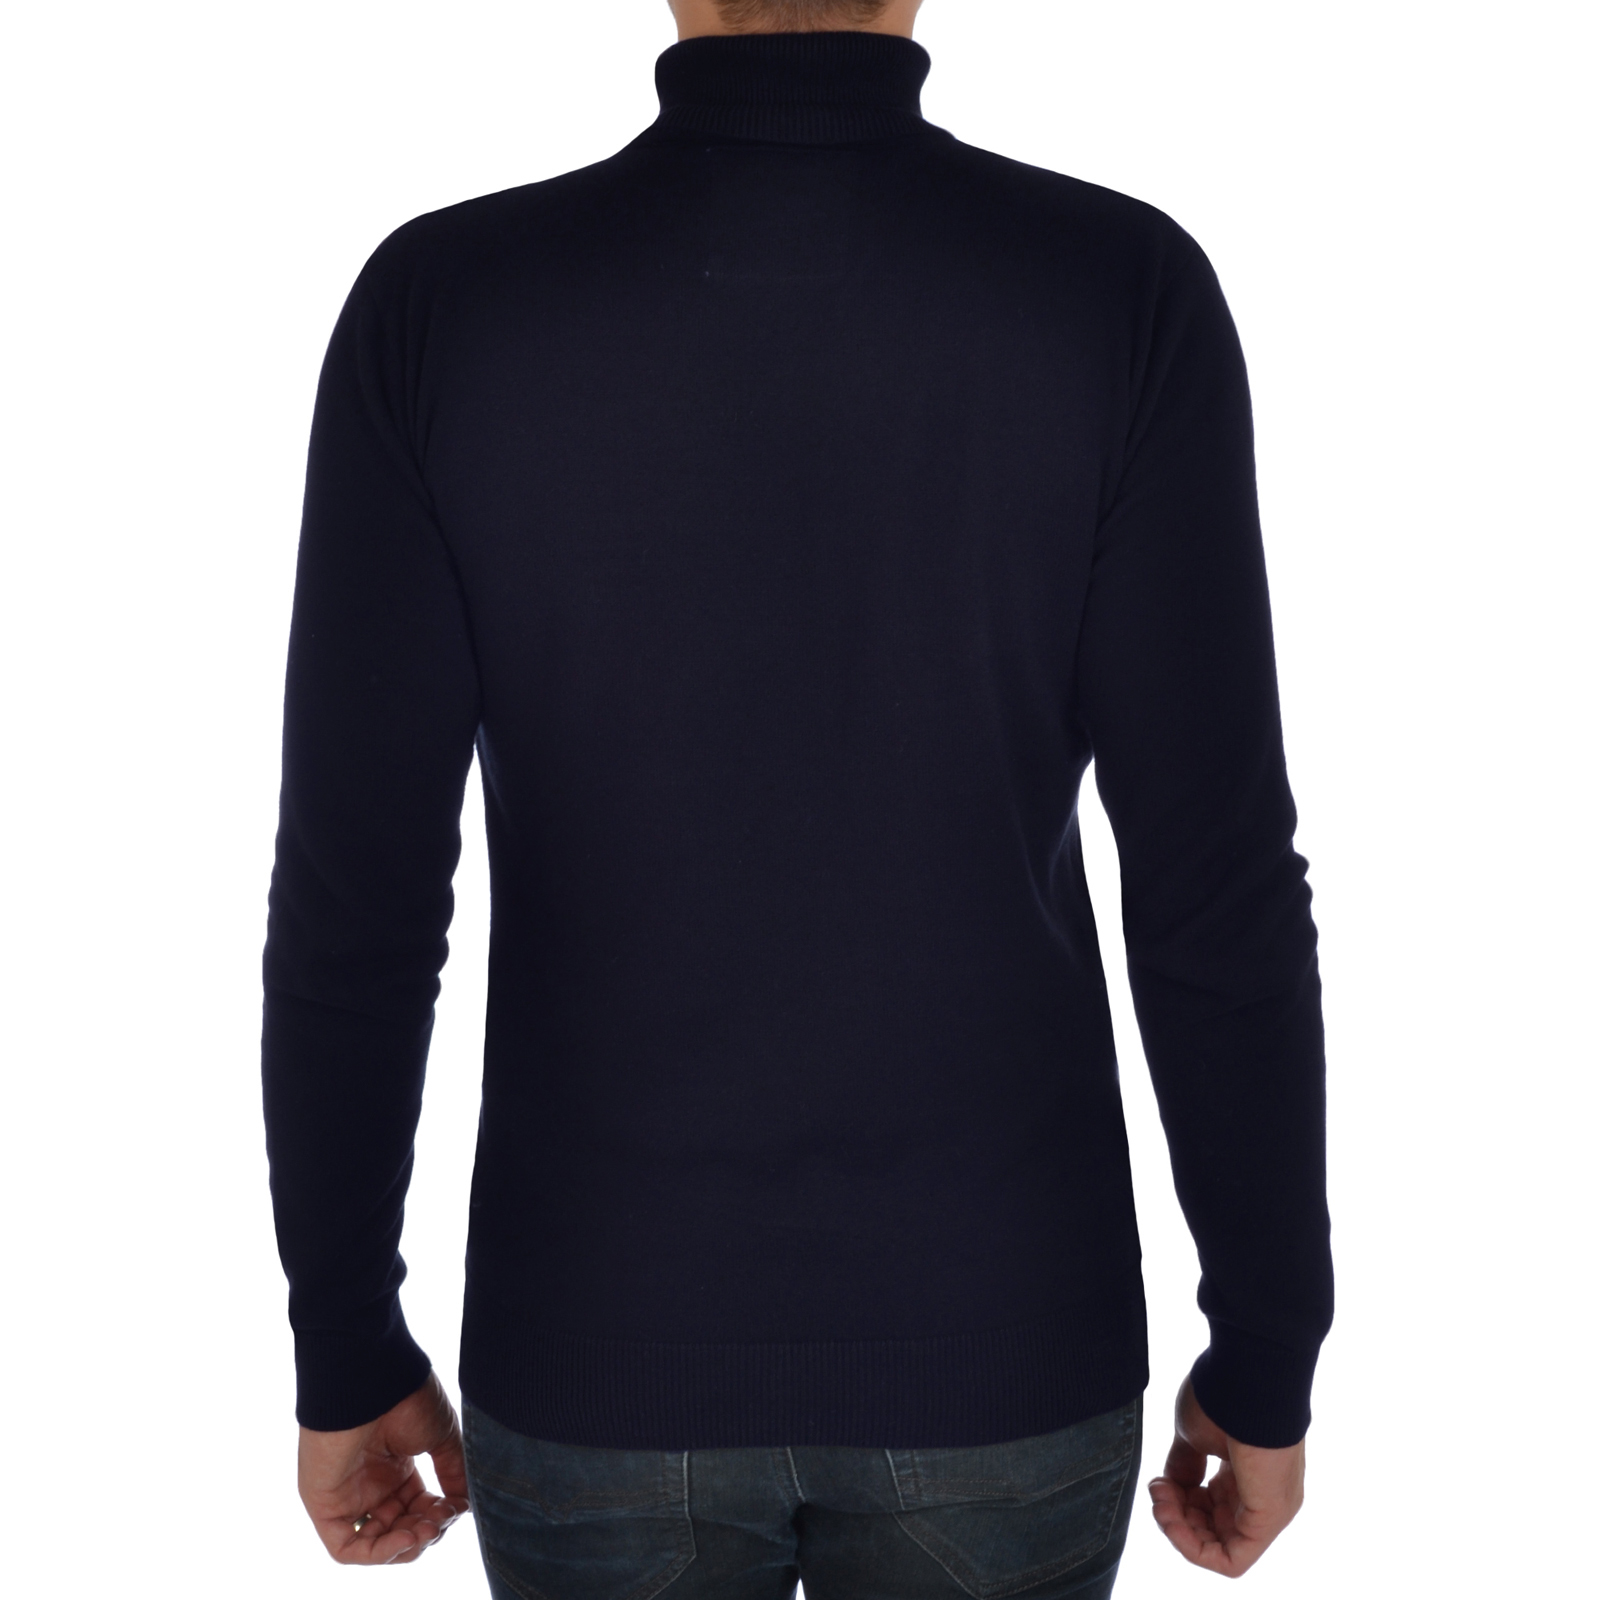 Jumper Polo Brave Roll Mens Sweater Pullover Turtle Soul Top Knit Neck Z7qEFY